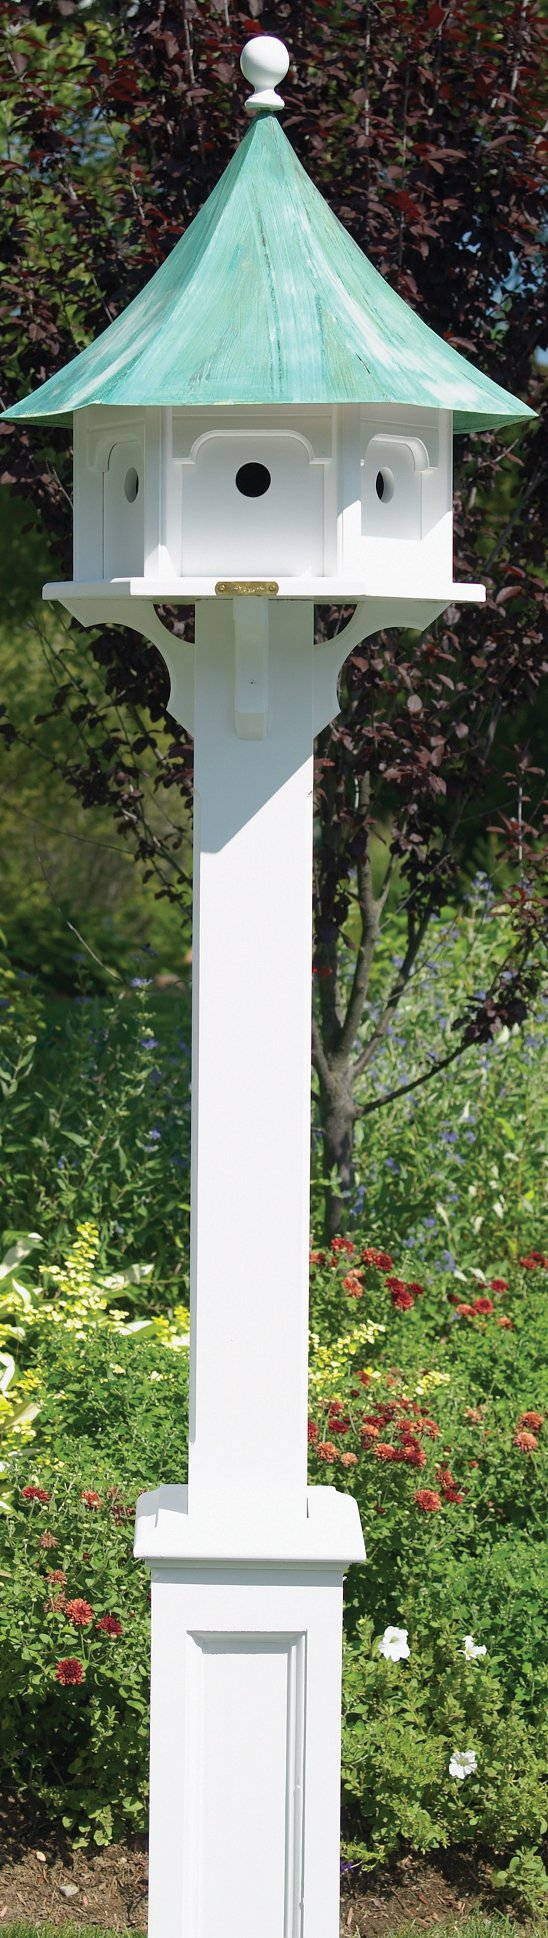 Good Directions Lazy Hill Farm Designs 999132 Hammersley Vinyl Post for Bird Houses, 104-Inch, White by Good Directions